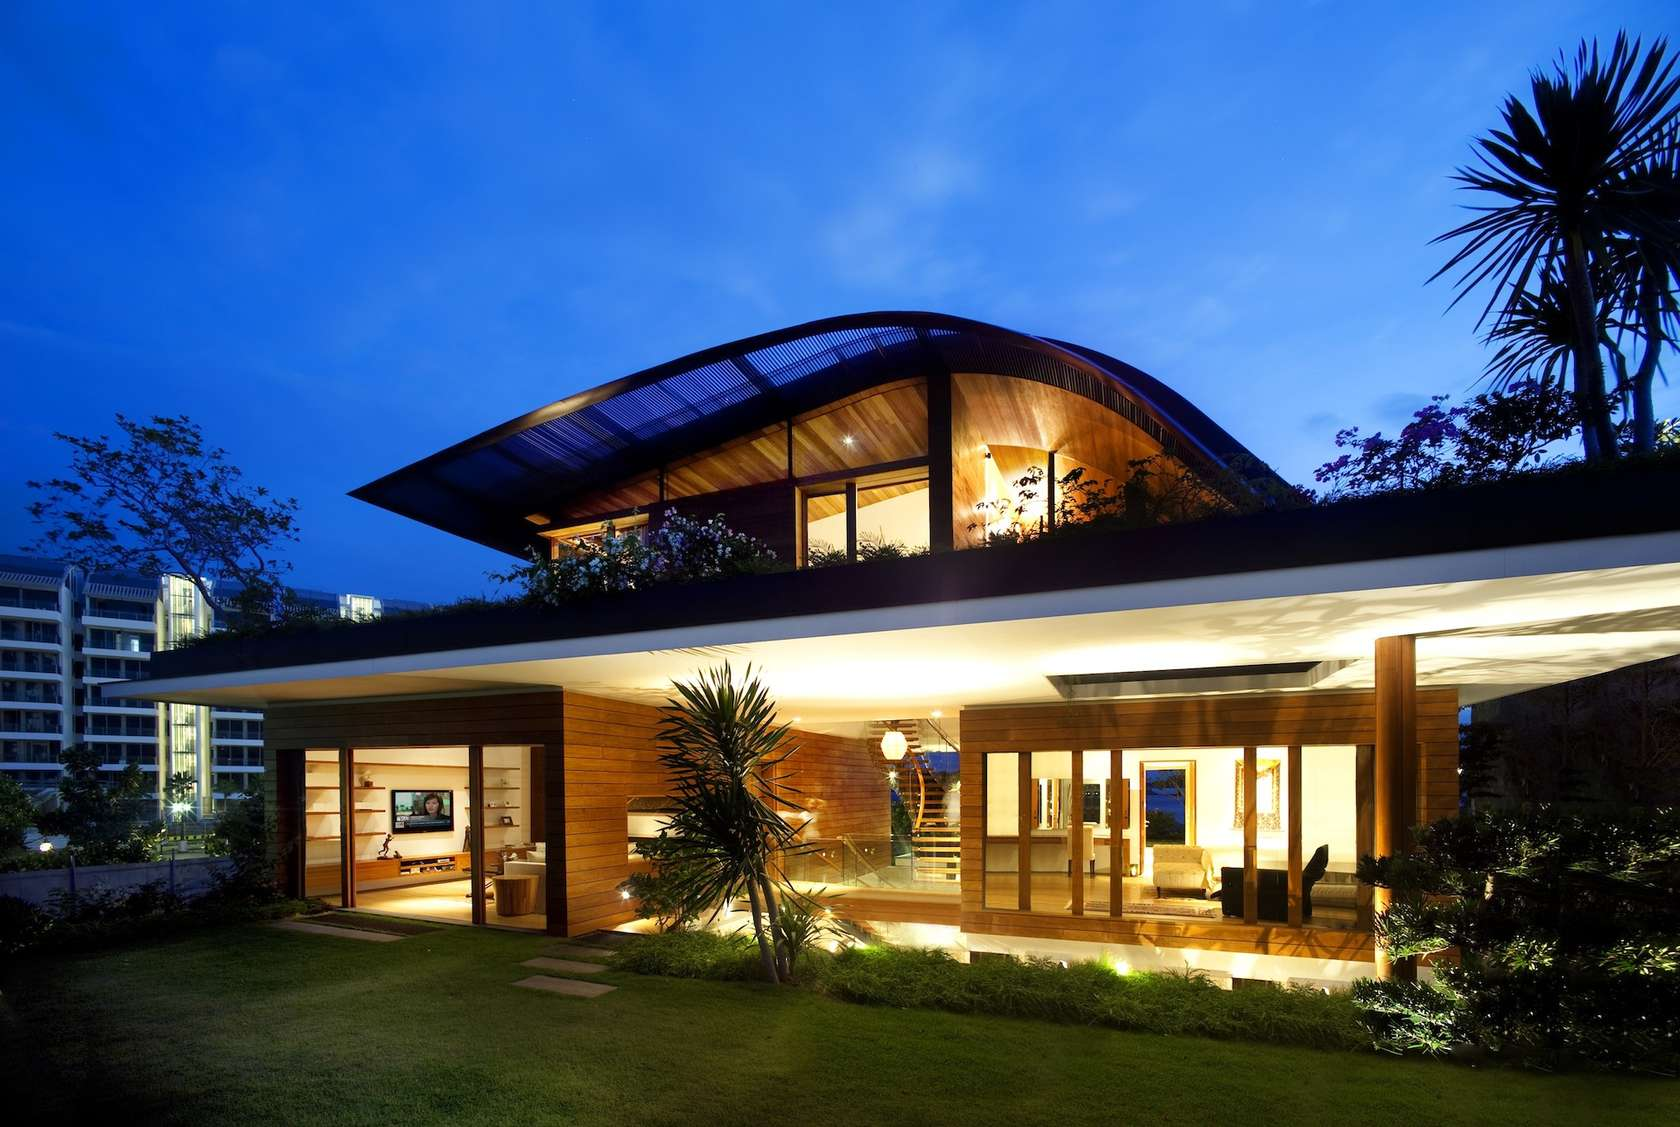 very attractive home construction and design. b2ap3 thumbnail Sky Garden House 1 jpg 16 GORGEOUS Singapore Homes You Need To See Believe  TheSmartLocal